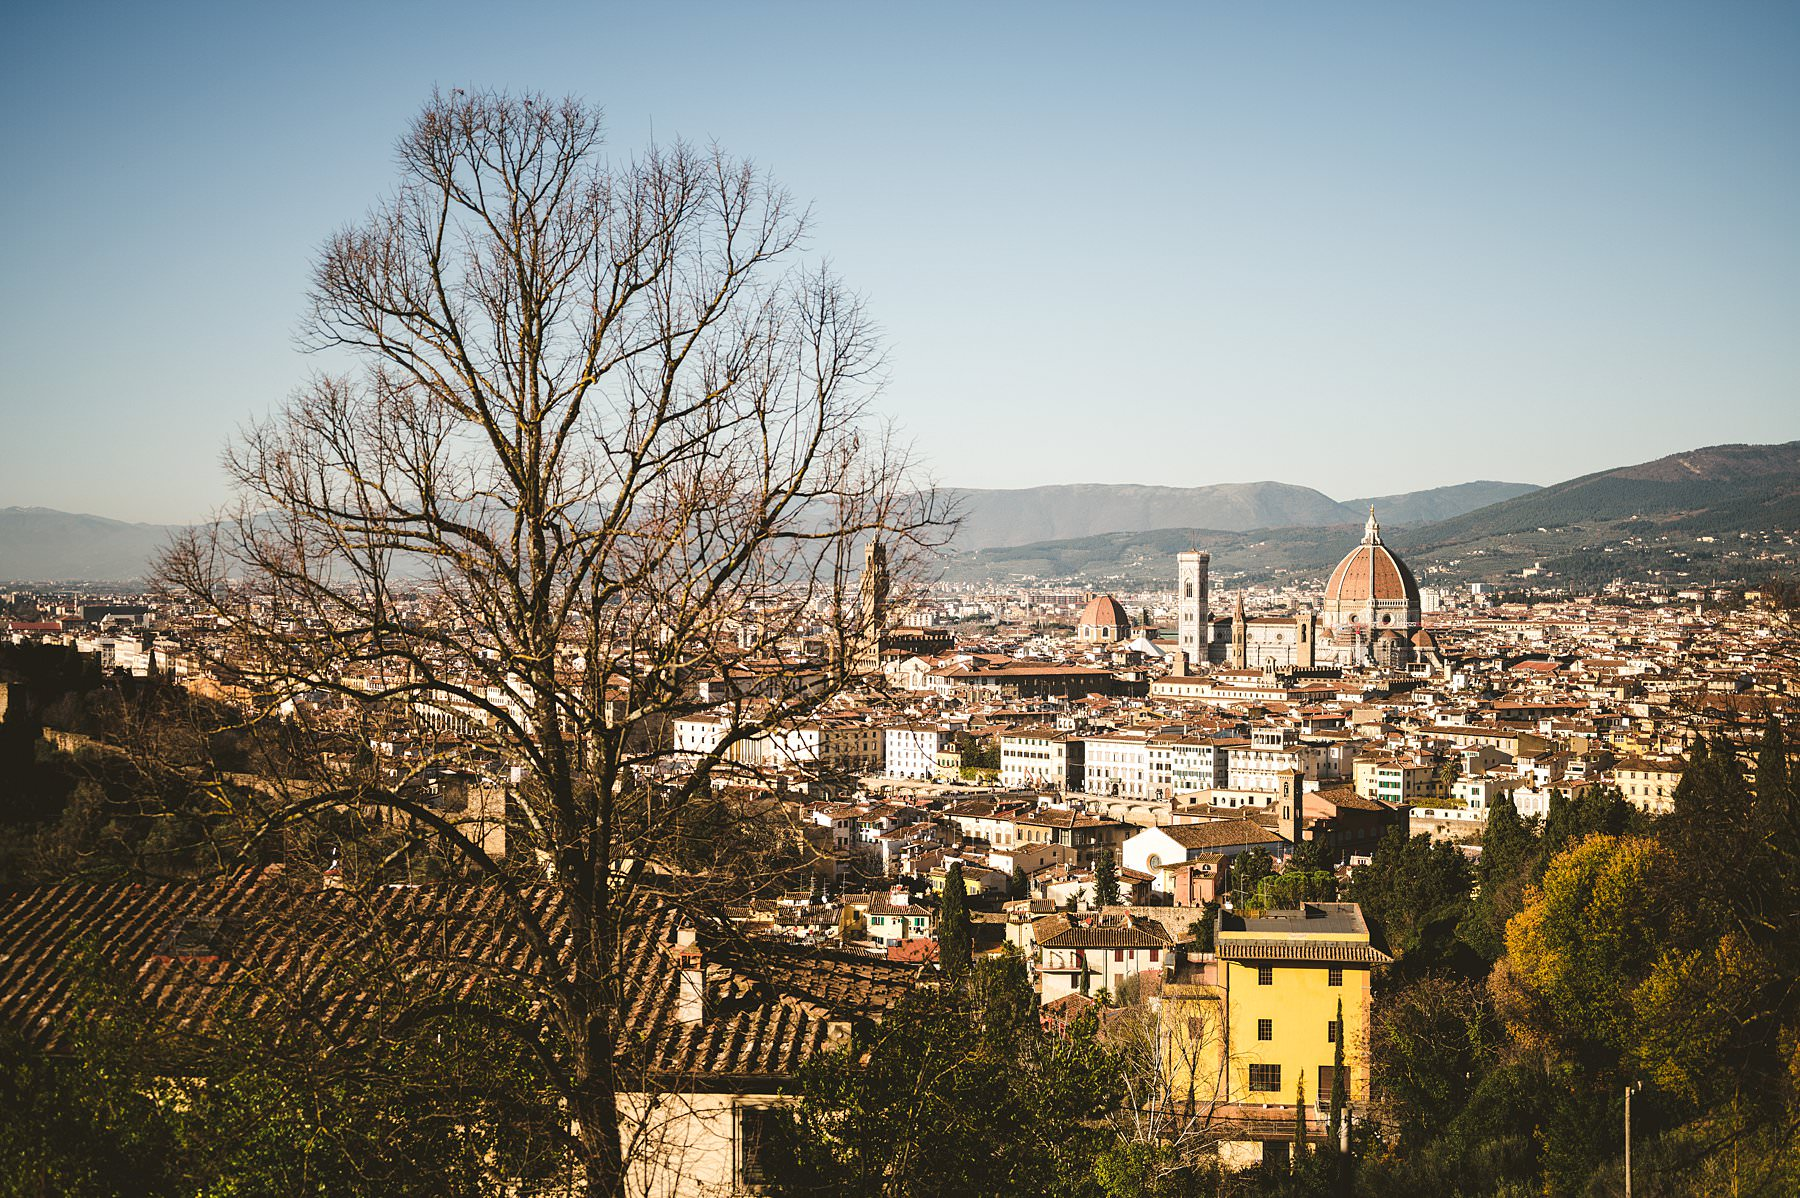 The charm of Florence in winter. Have you ever received a marriage proposal as a Christmas gift? It happened to this couple, that chose to celebrate with romantic engagement photos in Florence!